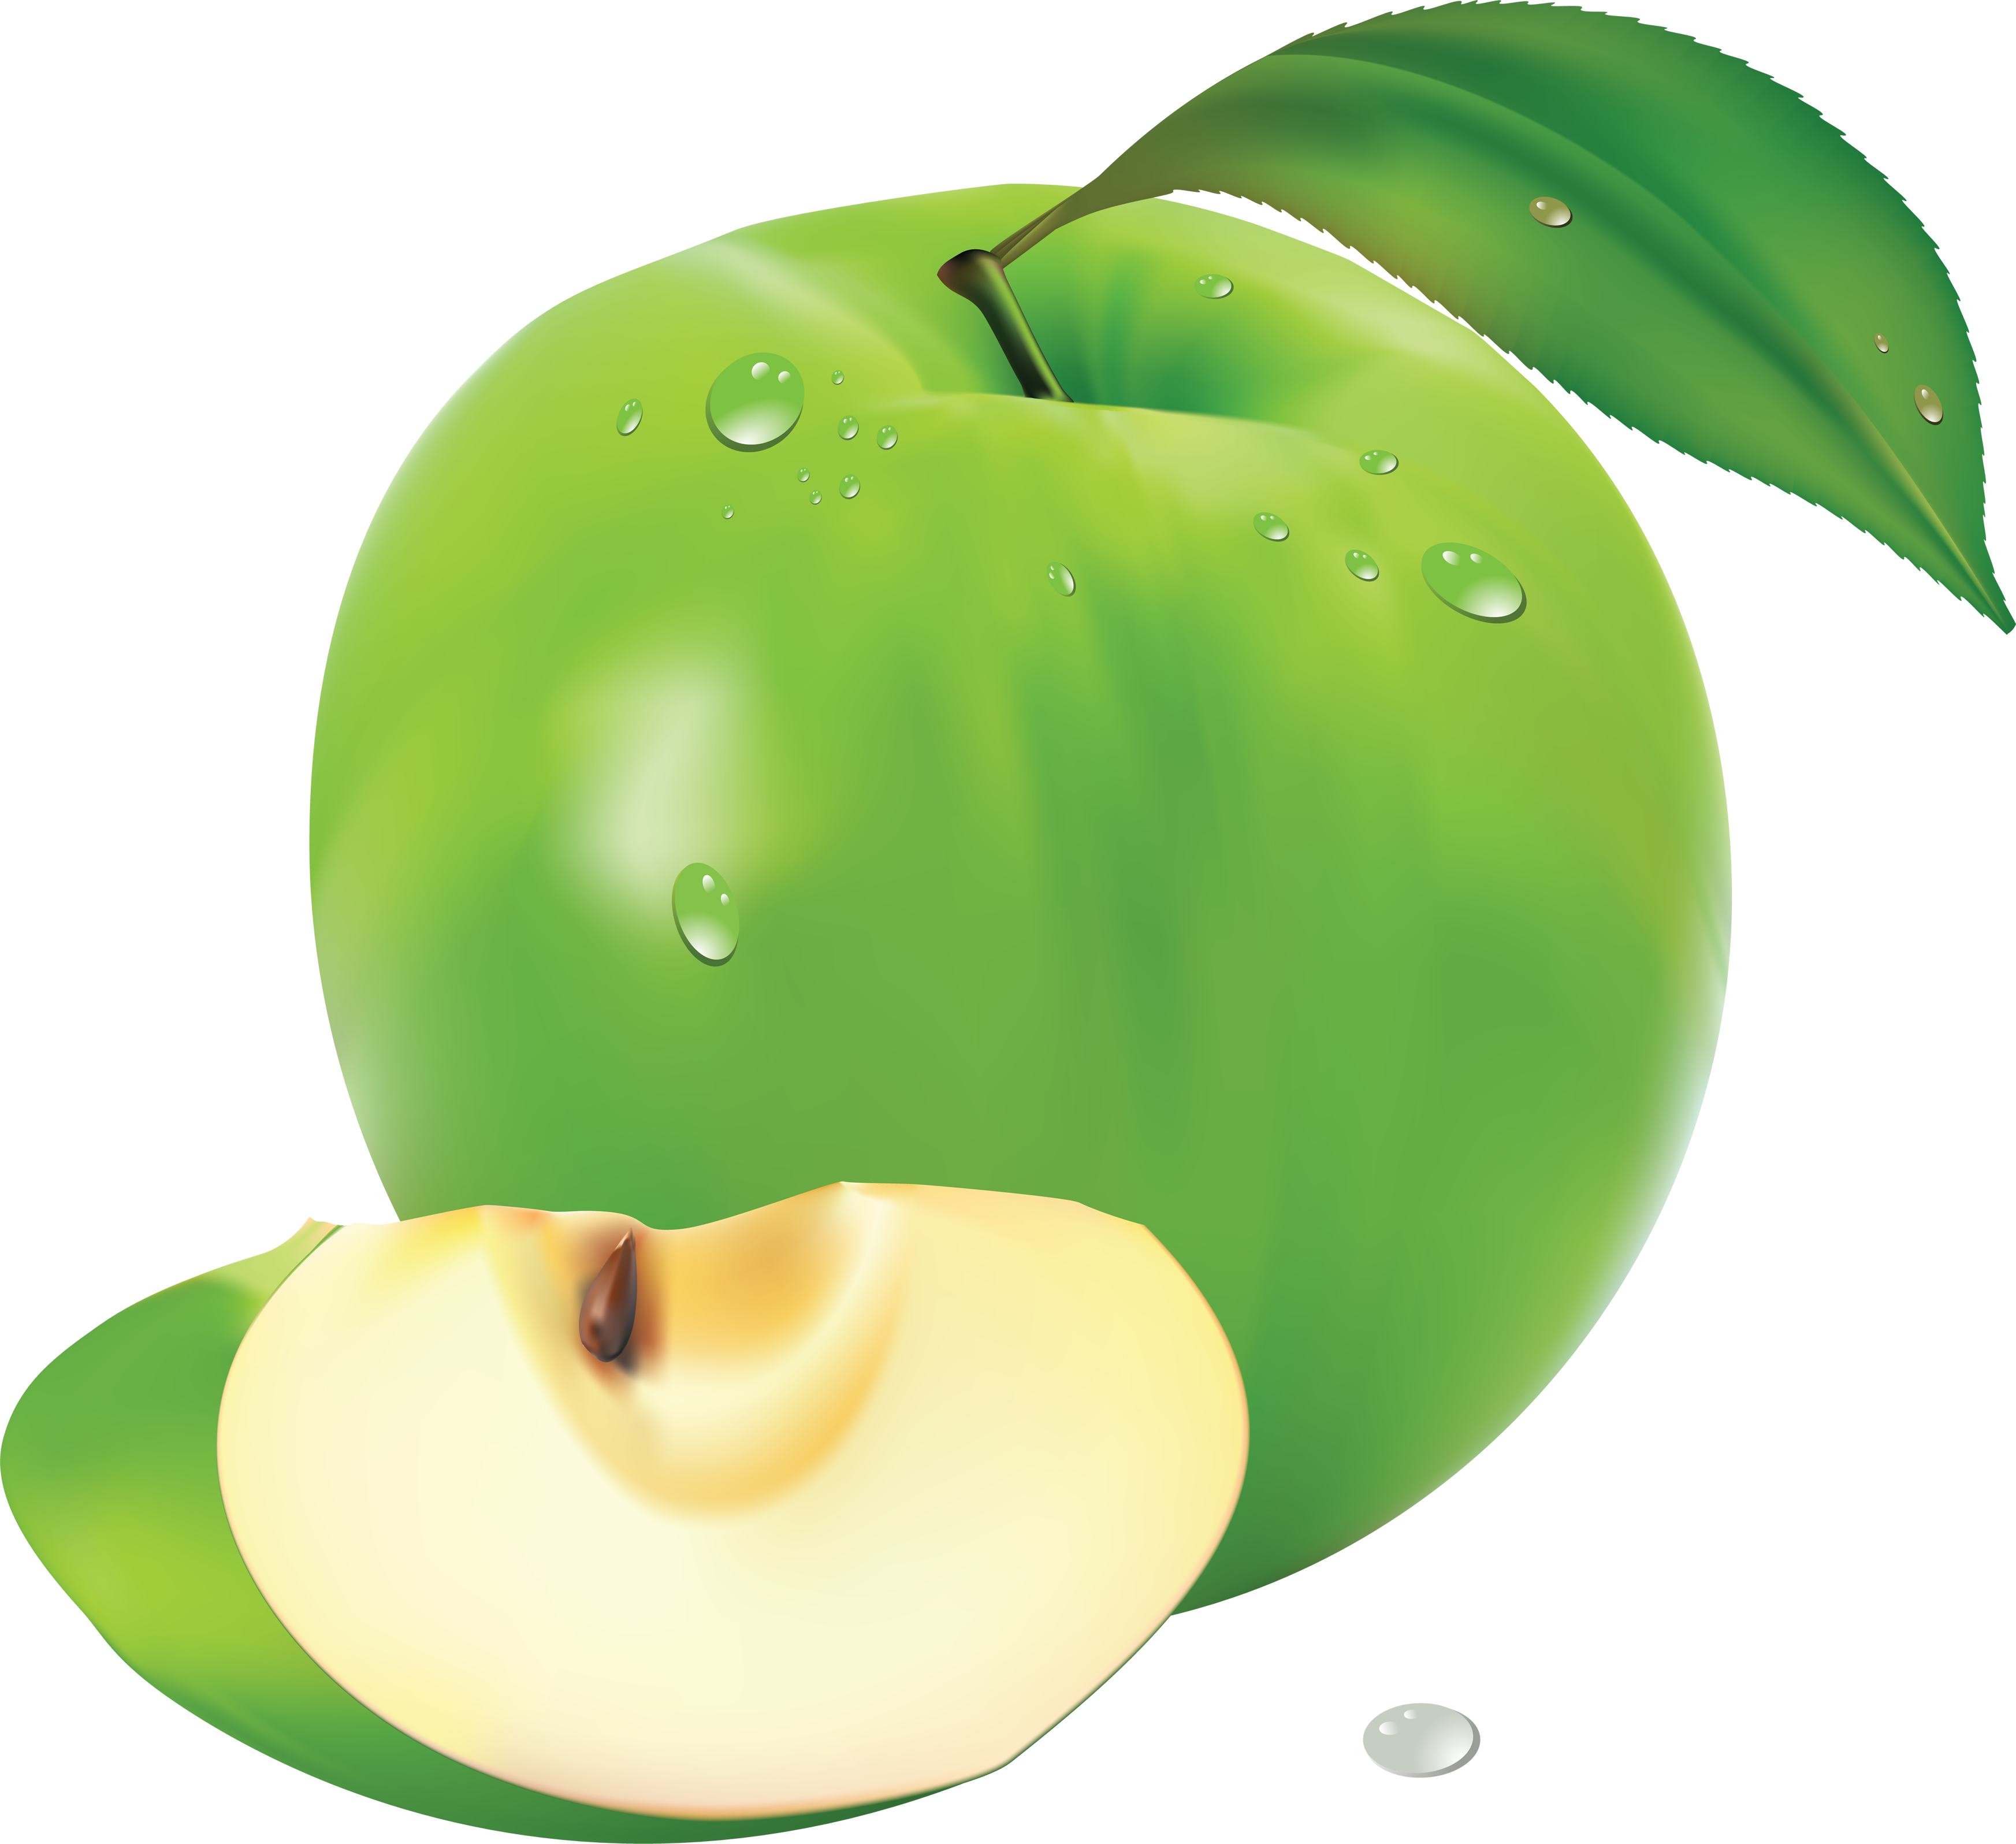 Apple images free download. Green apples png picture free stock